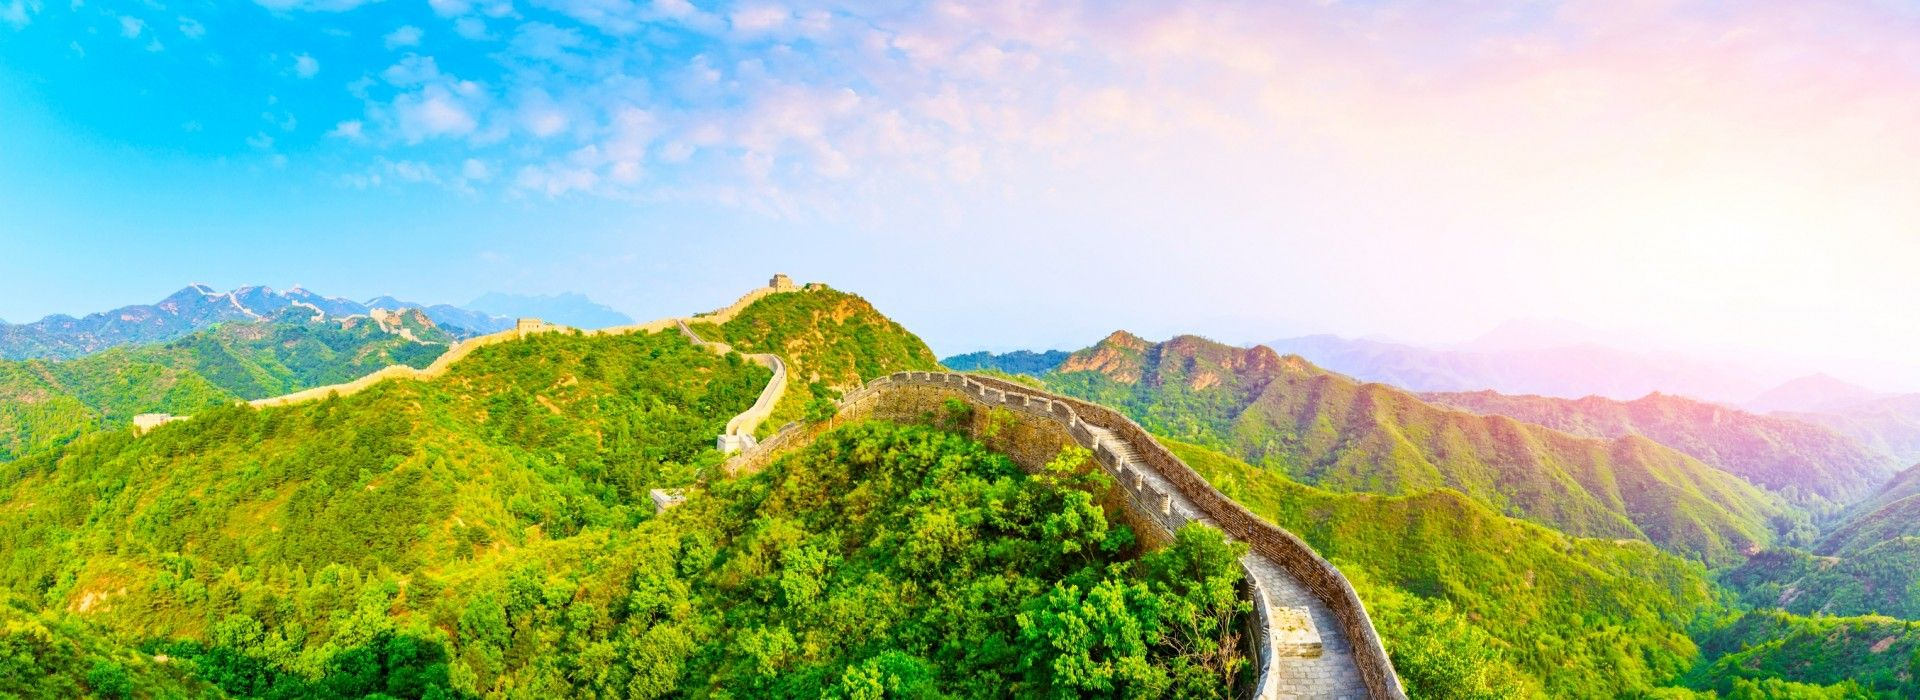 Sightseeing, attractions, culture and history Tours in China